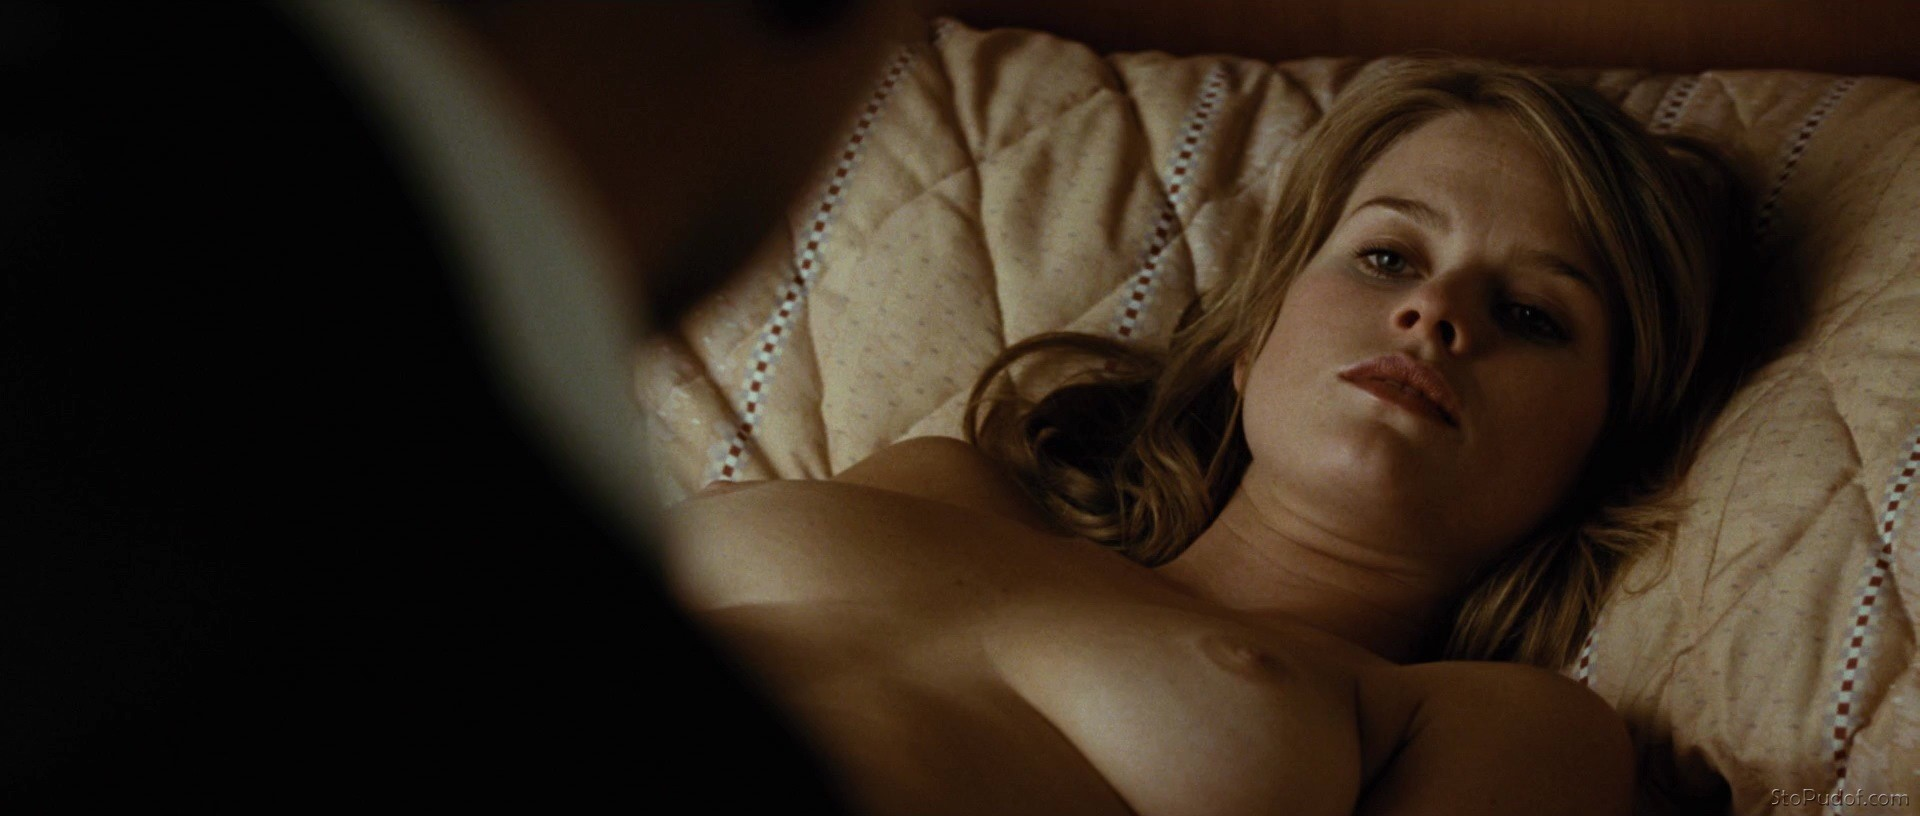 Alice Eve naked leaked uncensored - UkPhotoSafari